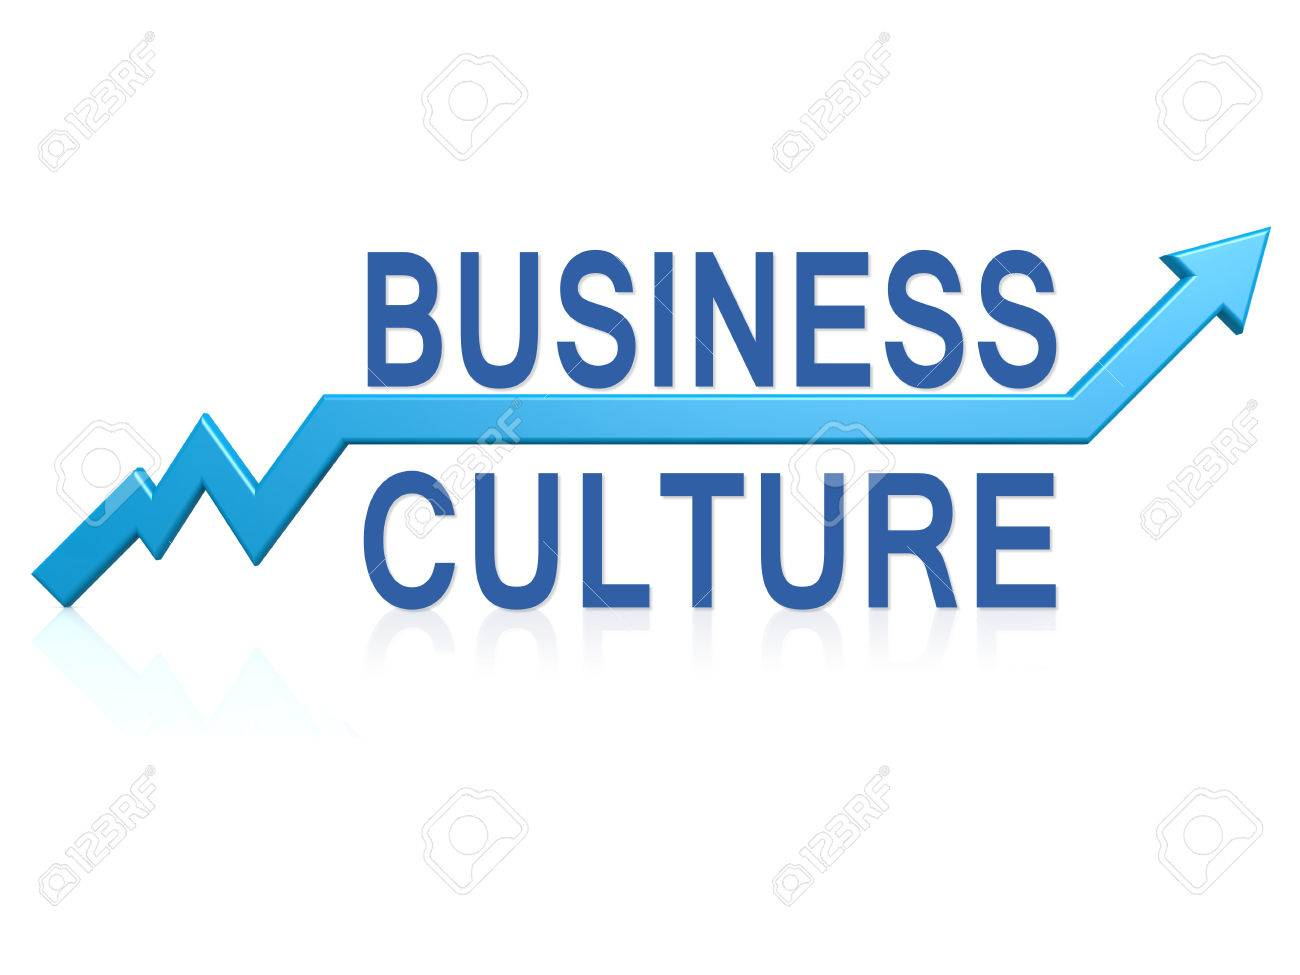 Business culture with blue arrow image with hi-res rendered artwork that could be used for any graphic design. - 43449239